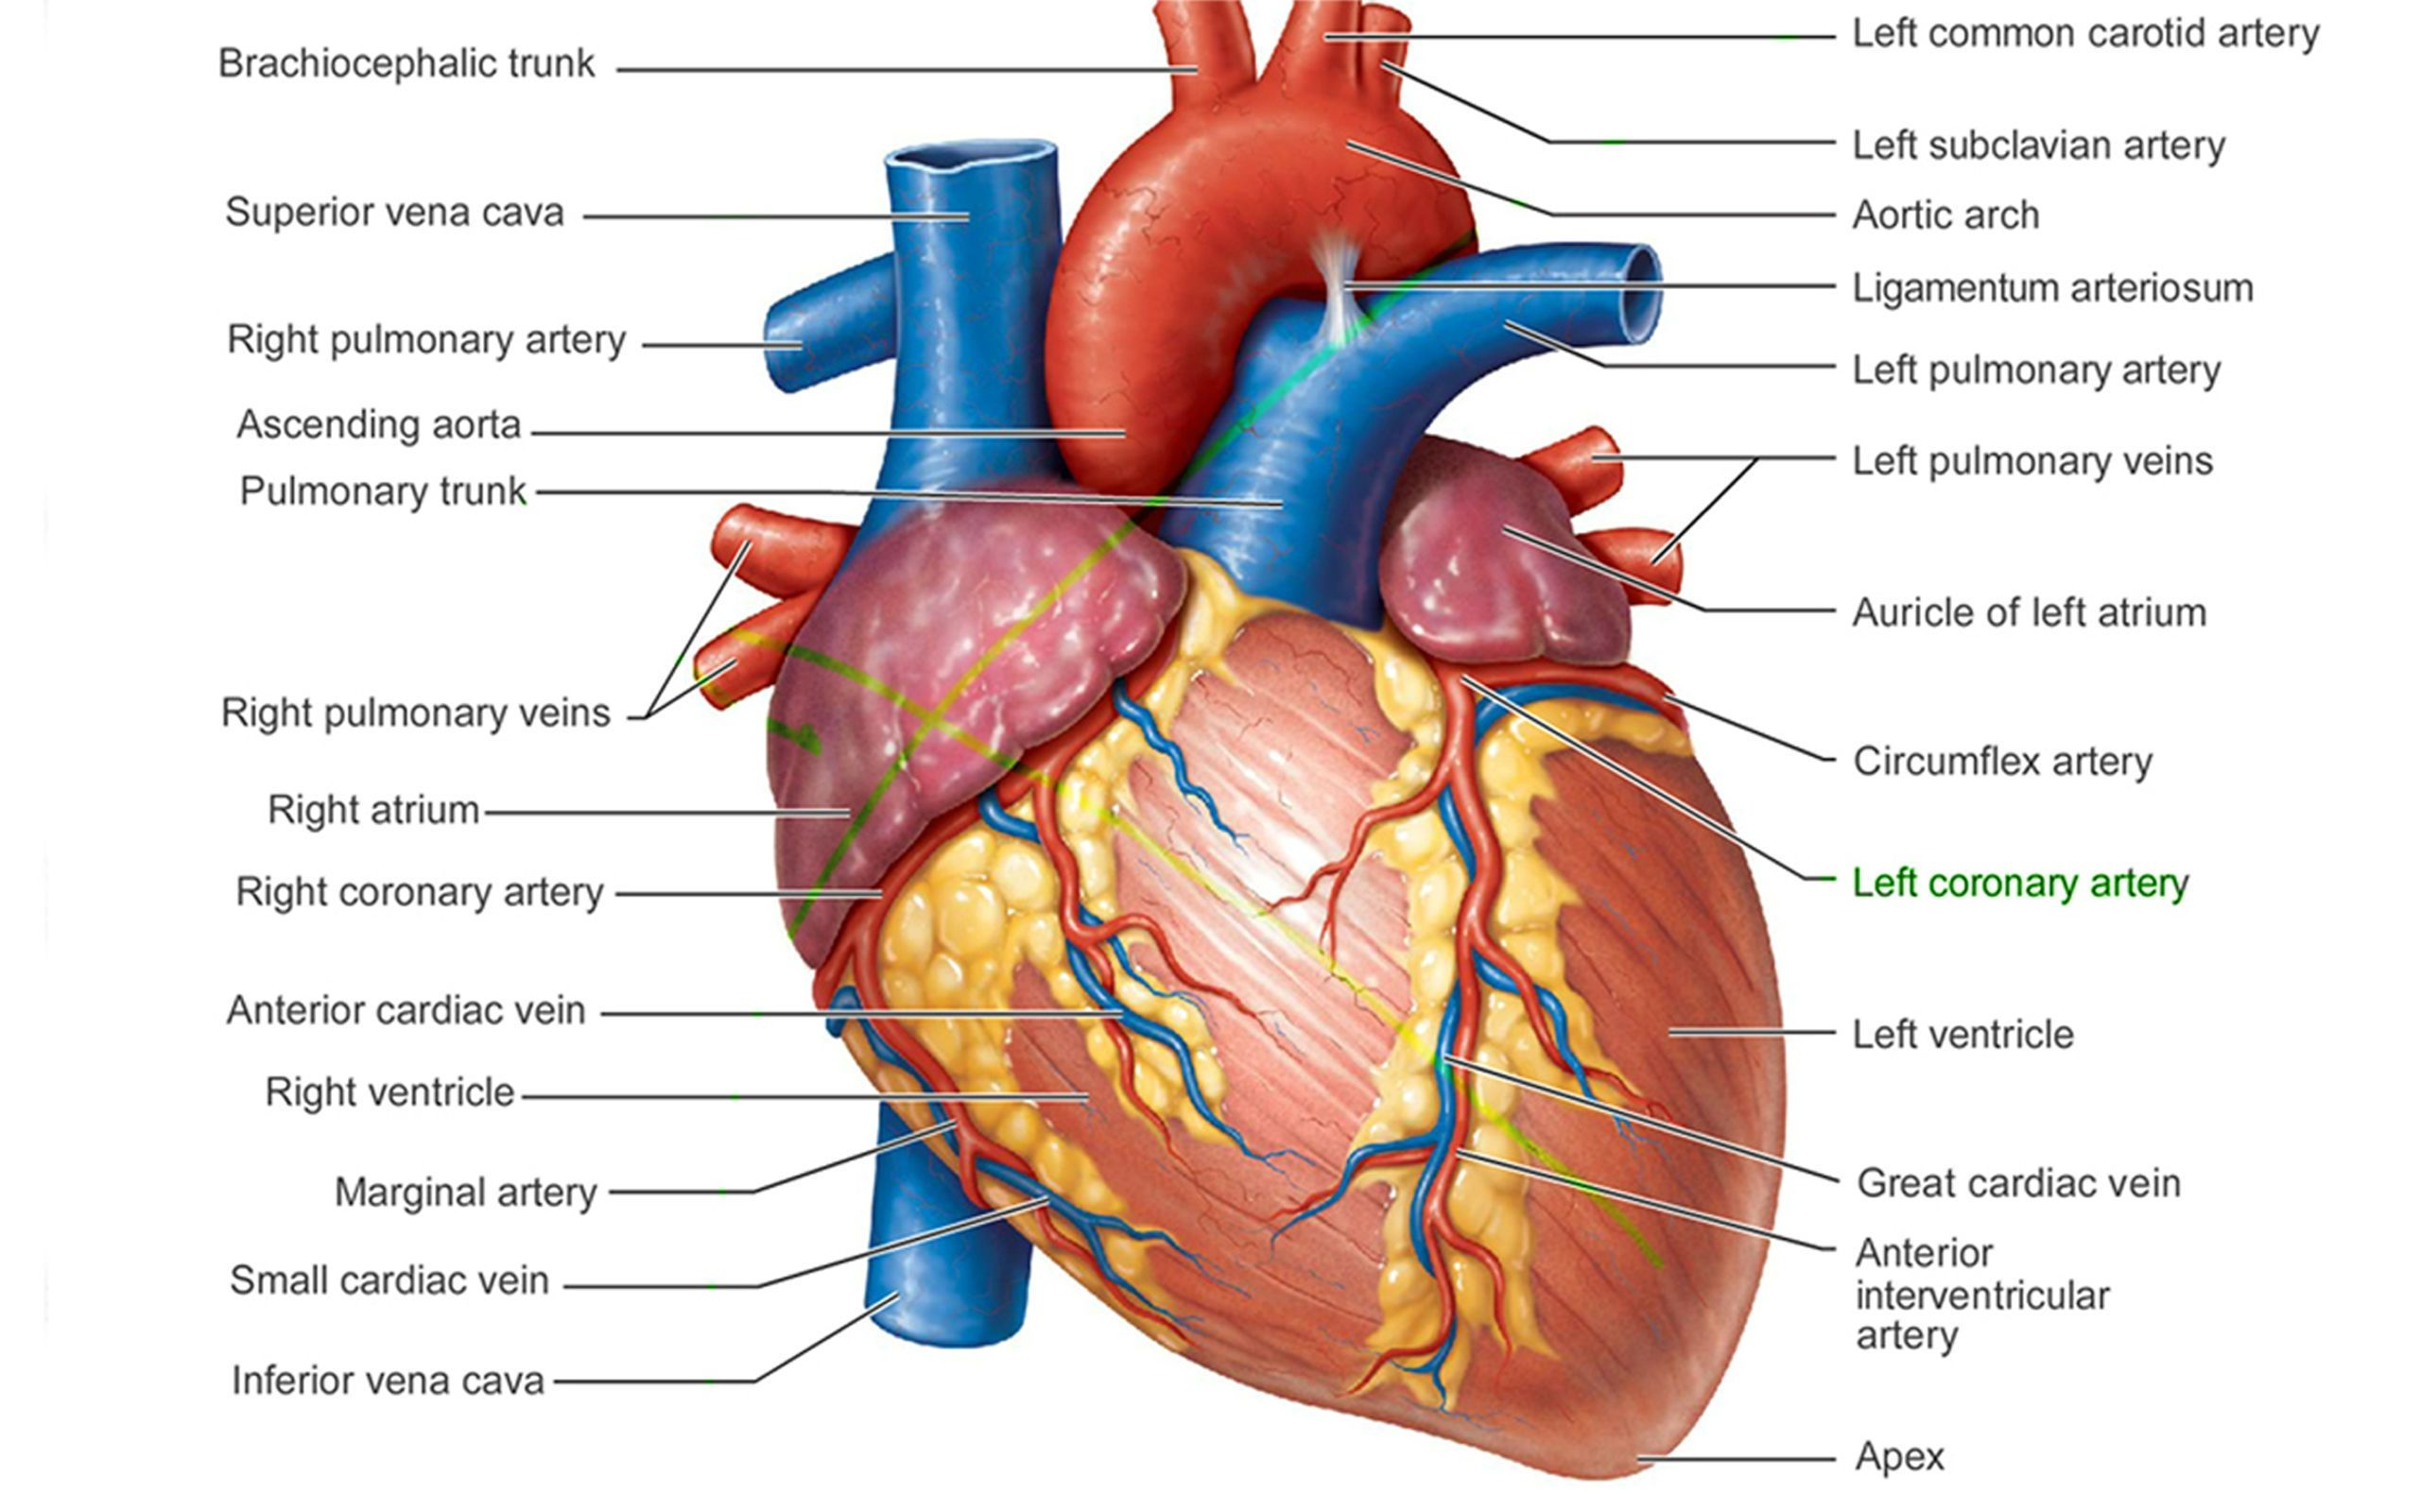 hight resolution of pictures of human heart anatomy anatomy of the human heart 4k ultra hd wallpaper